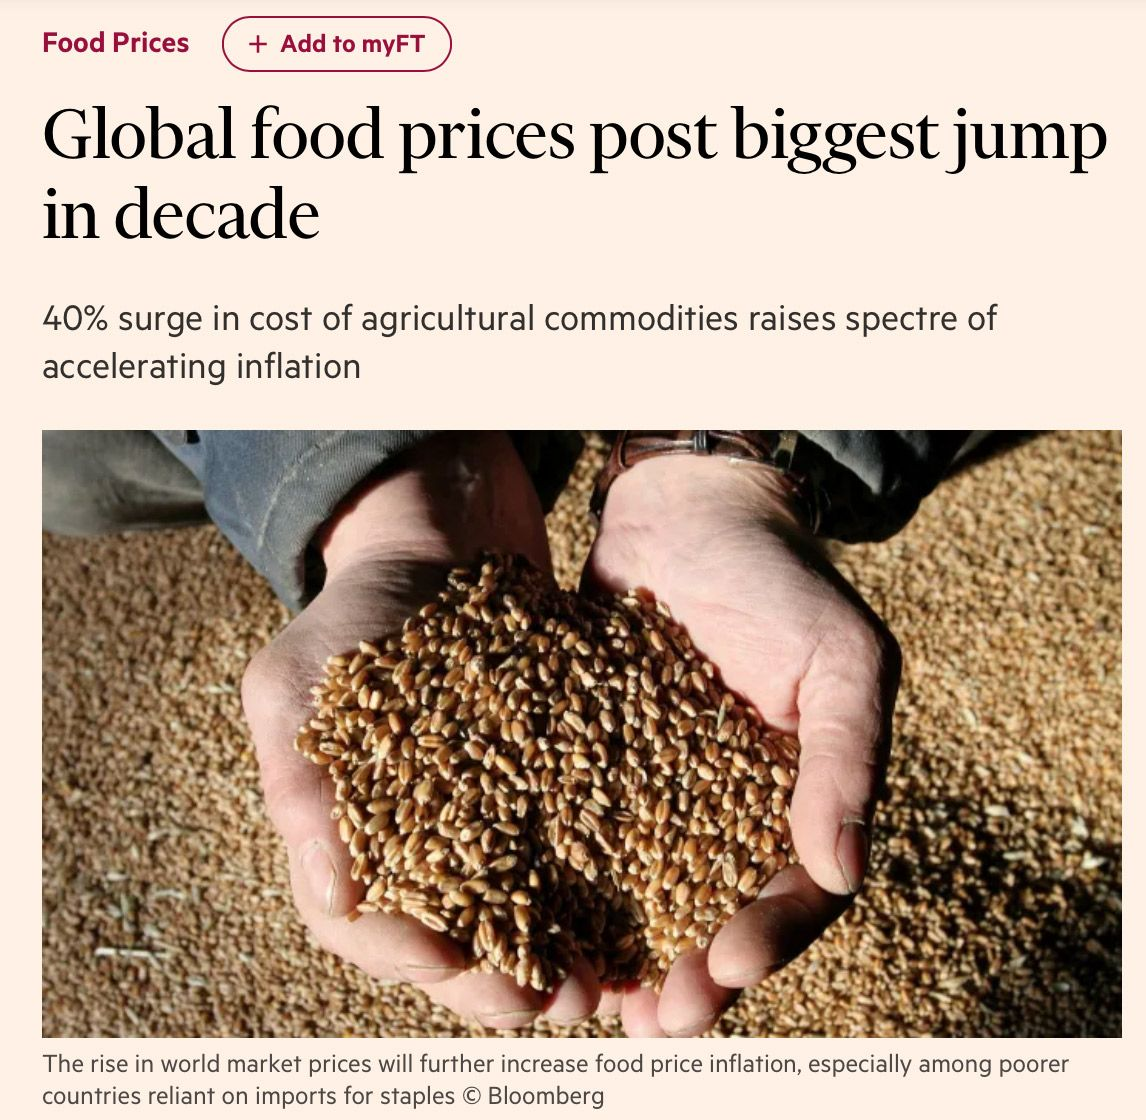 Global food prices post biggest jump in decade